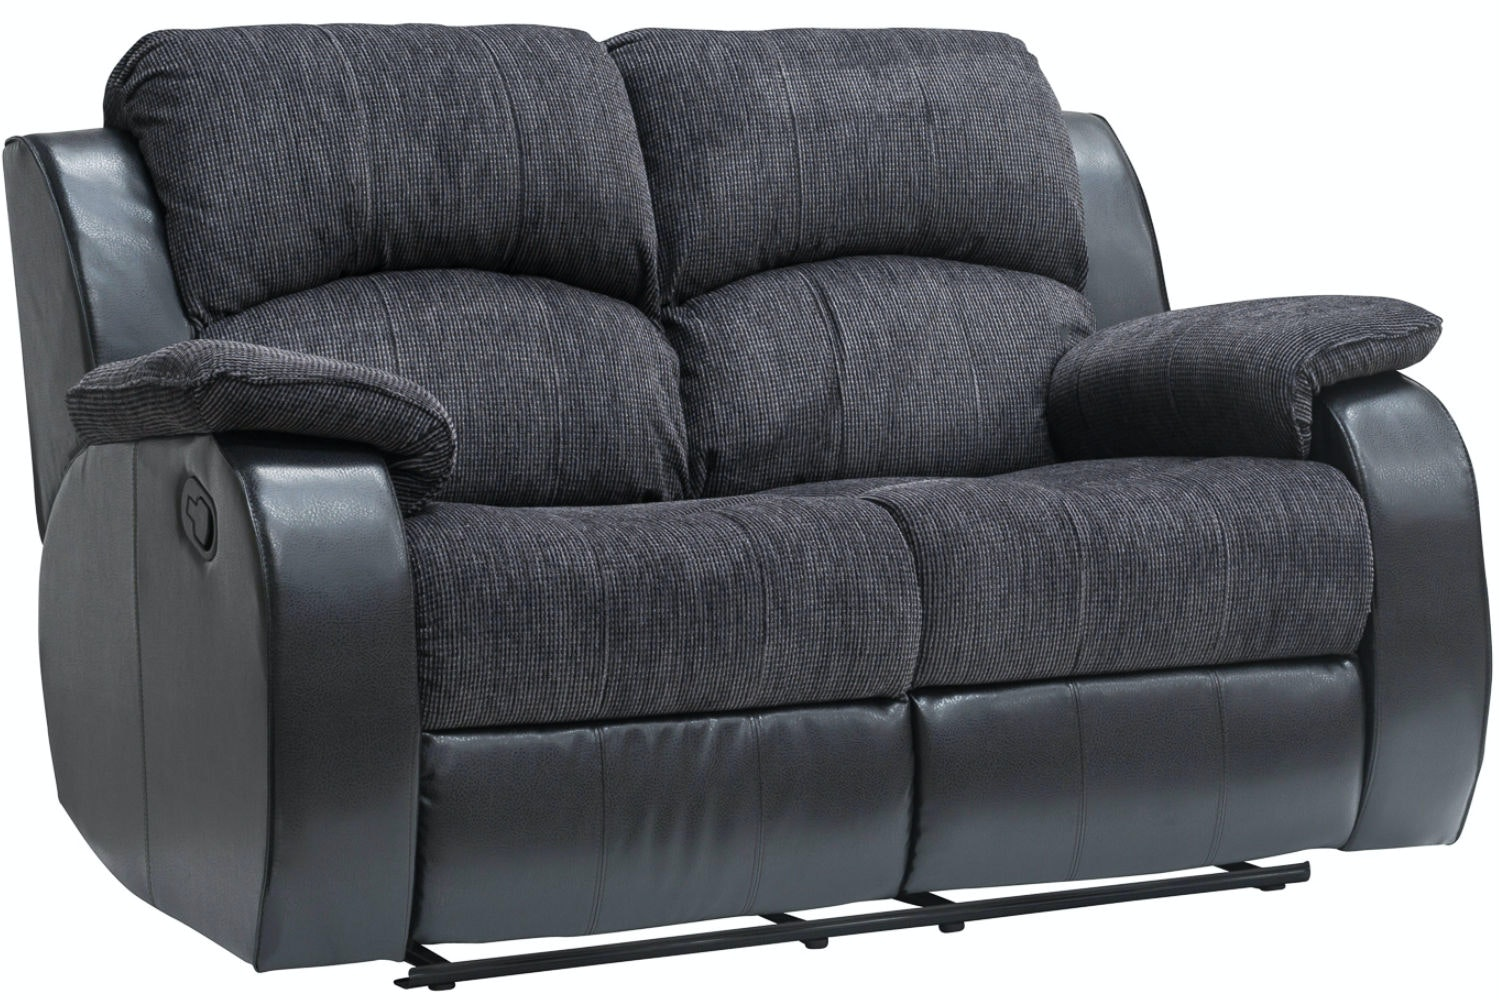 Kayde 2 Seater Recliner | Black